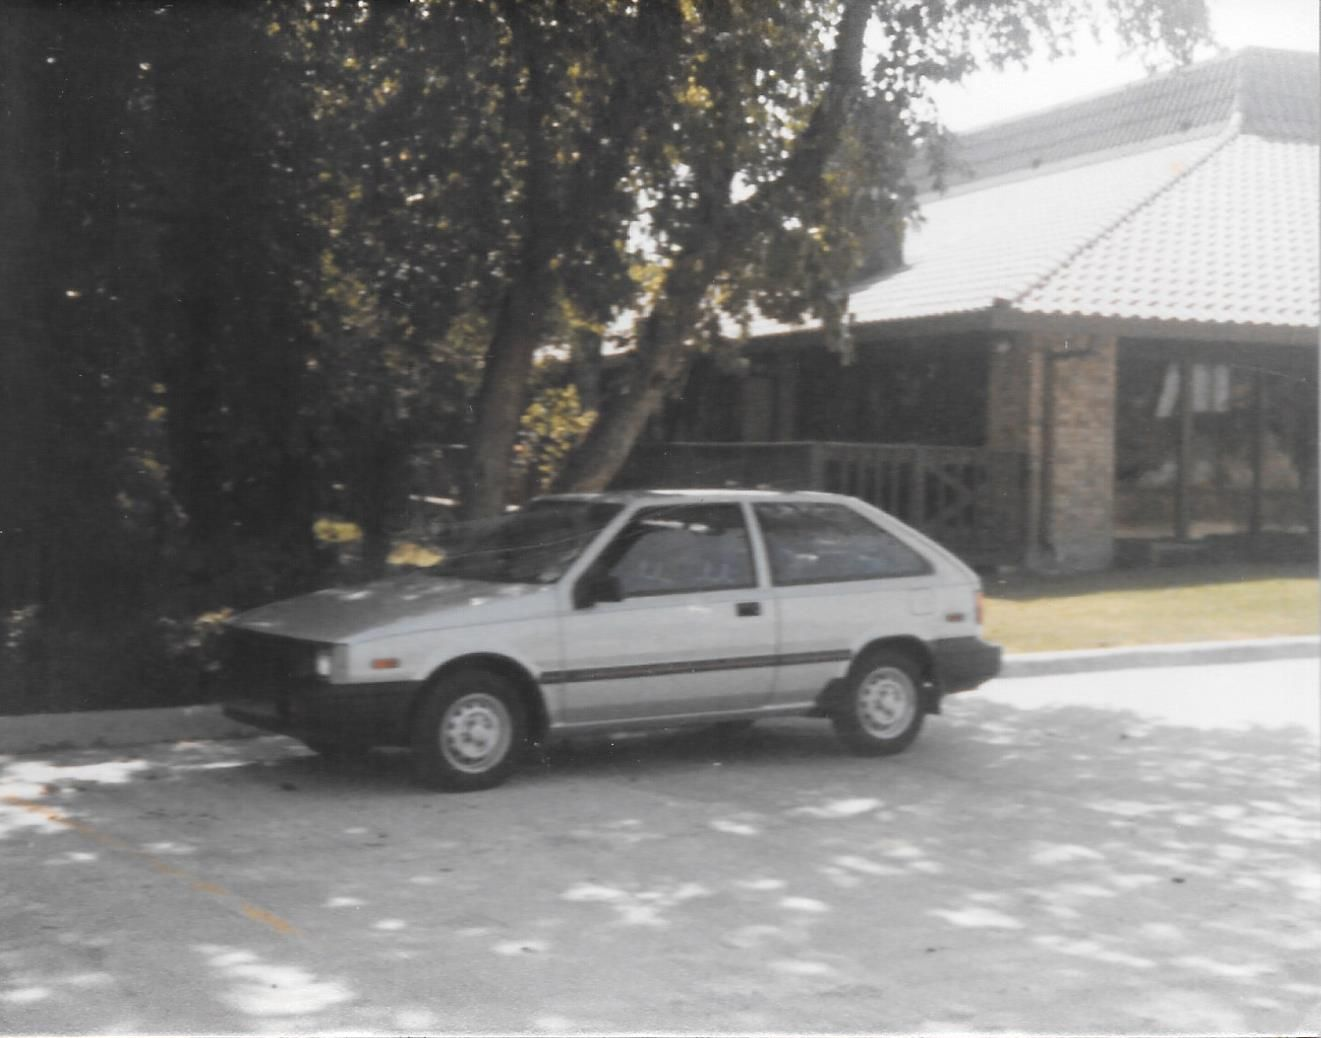 The first year the Hyundai came out, I believe it was 1986. Our car ...